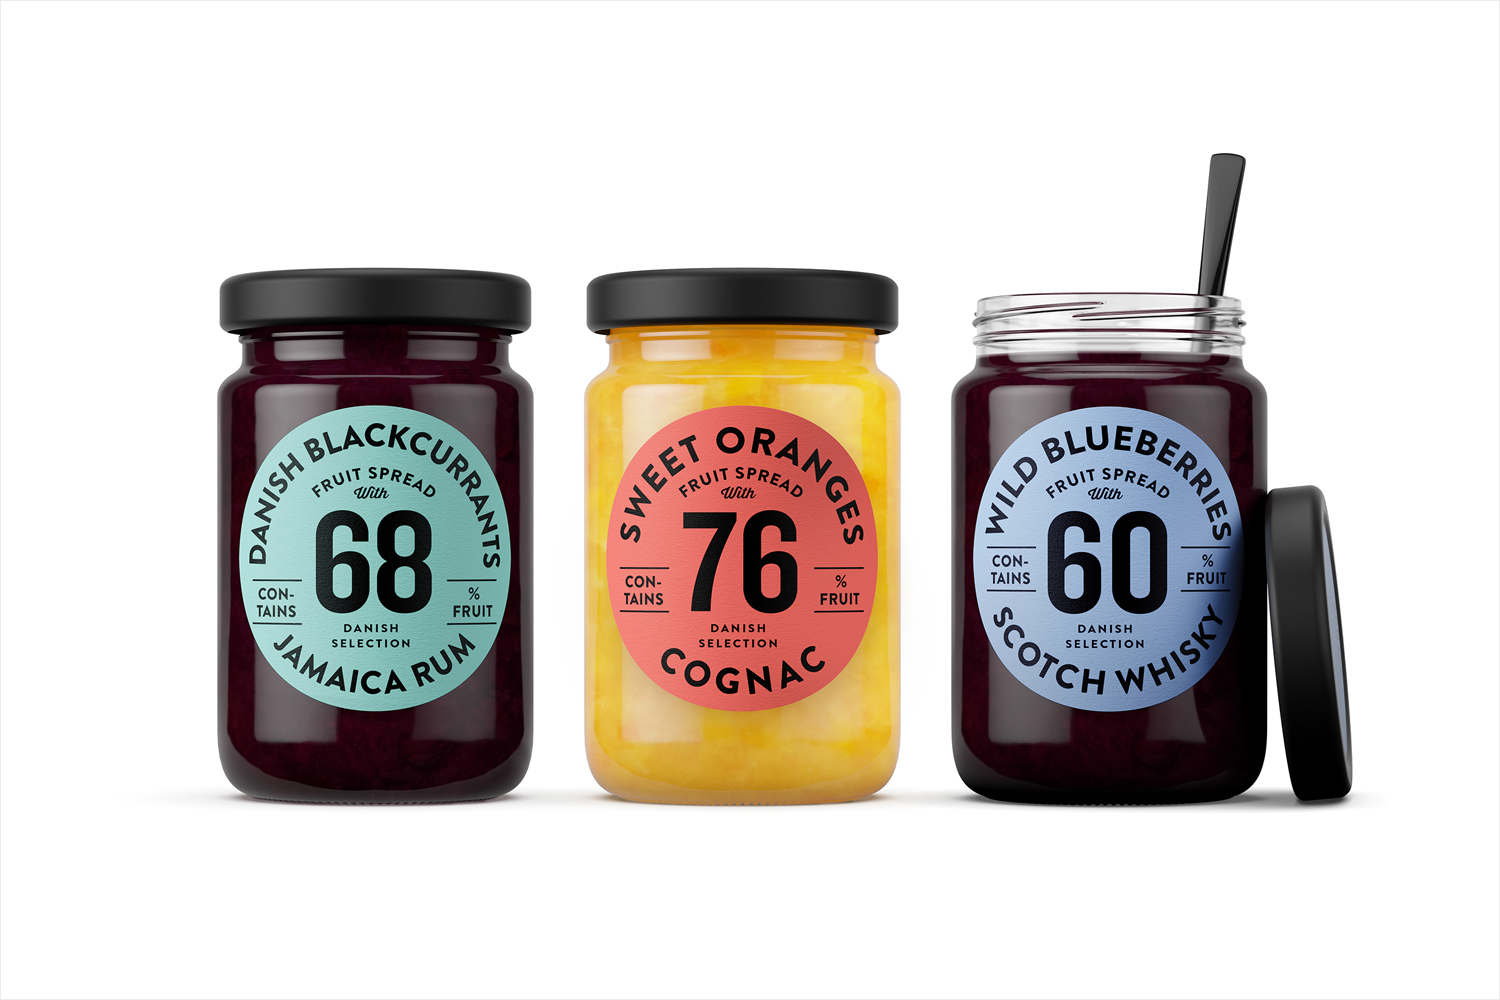 01-Danish-Selection-Alcohlic-Jam-Branding-Packaging-Kontrapunkt-BPO-Orkla-Foods-Danmark